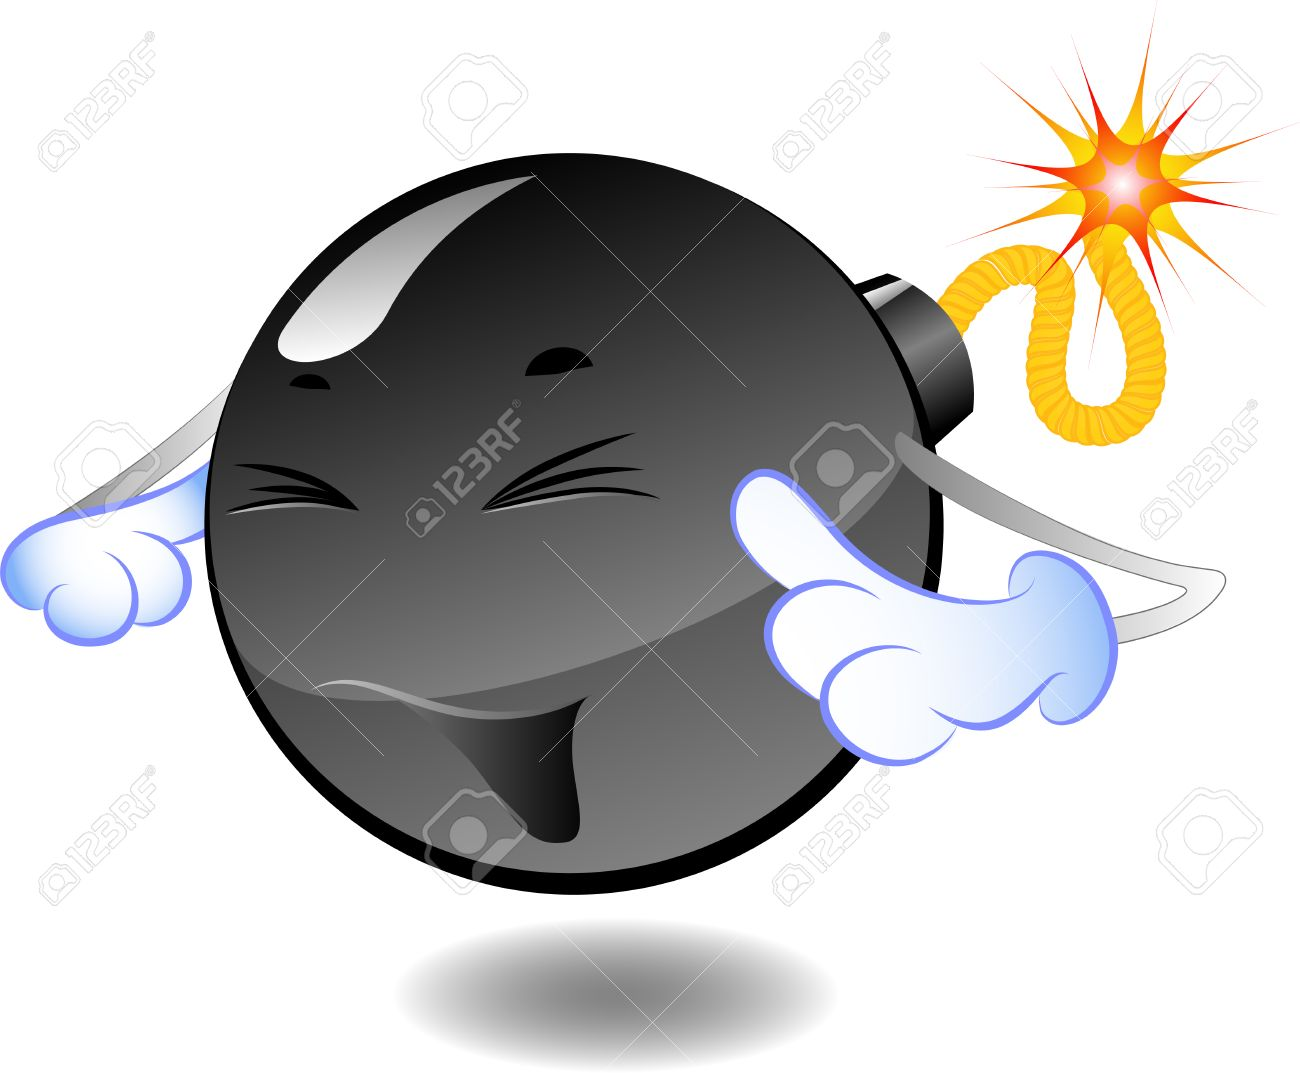 Bomb - series of caricatures of bombs Stock Vector - 5456537